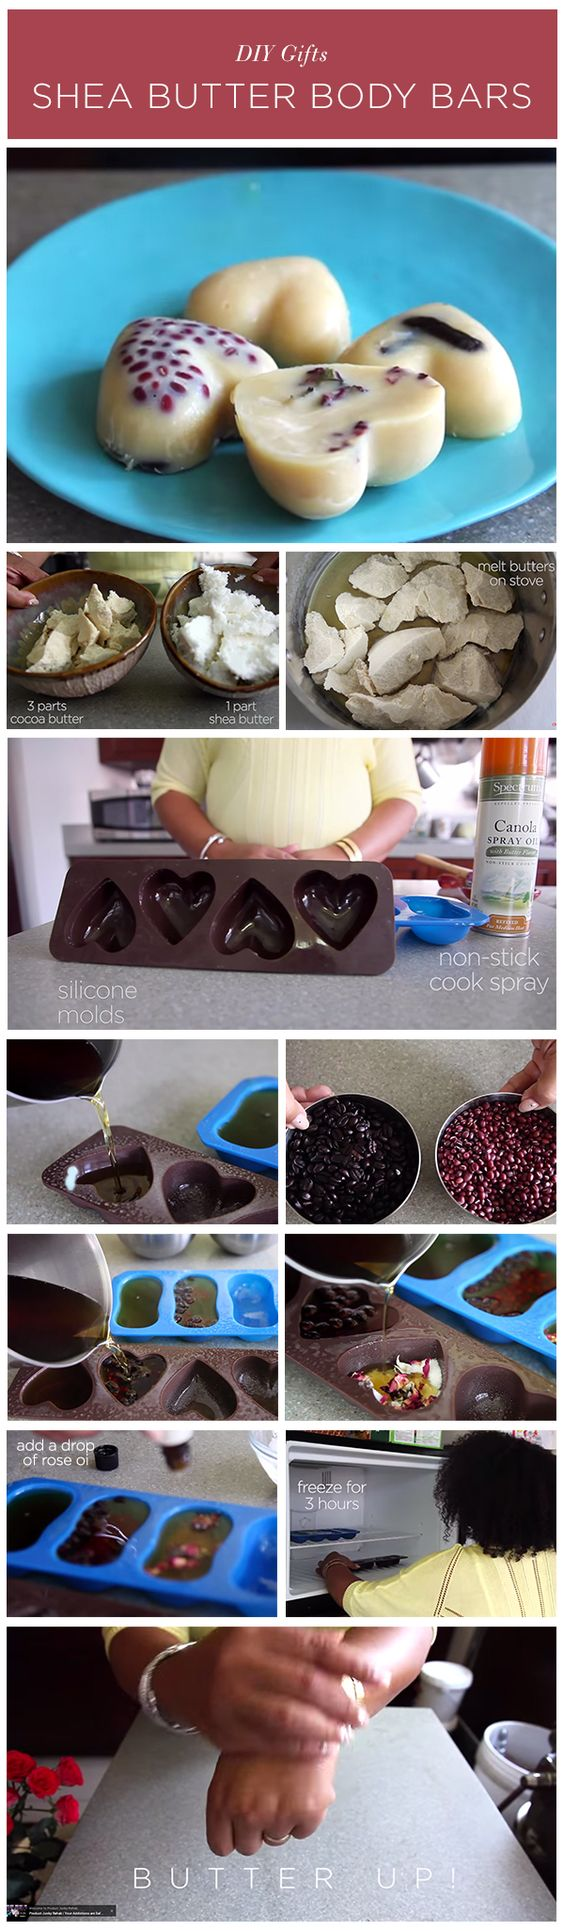 Enjoy this DIY Shea Butter Bars tutorial with our founder Lisa Price -- perfect for yourself or as a holiday gift!!: